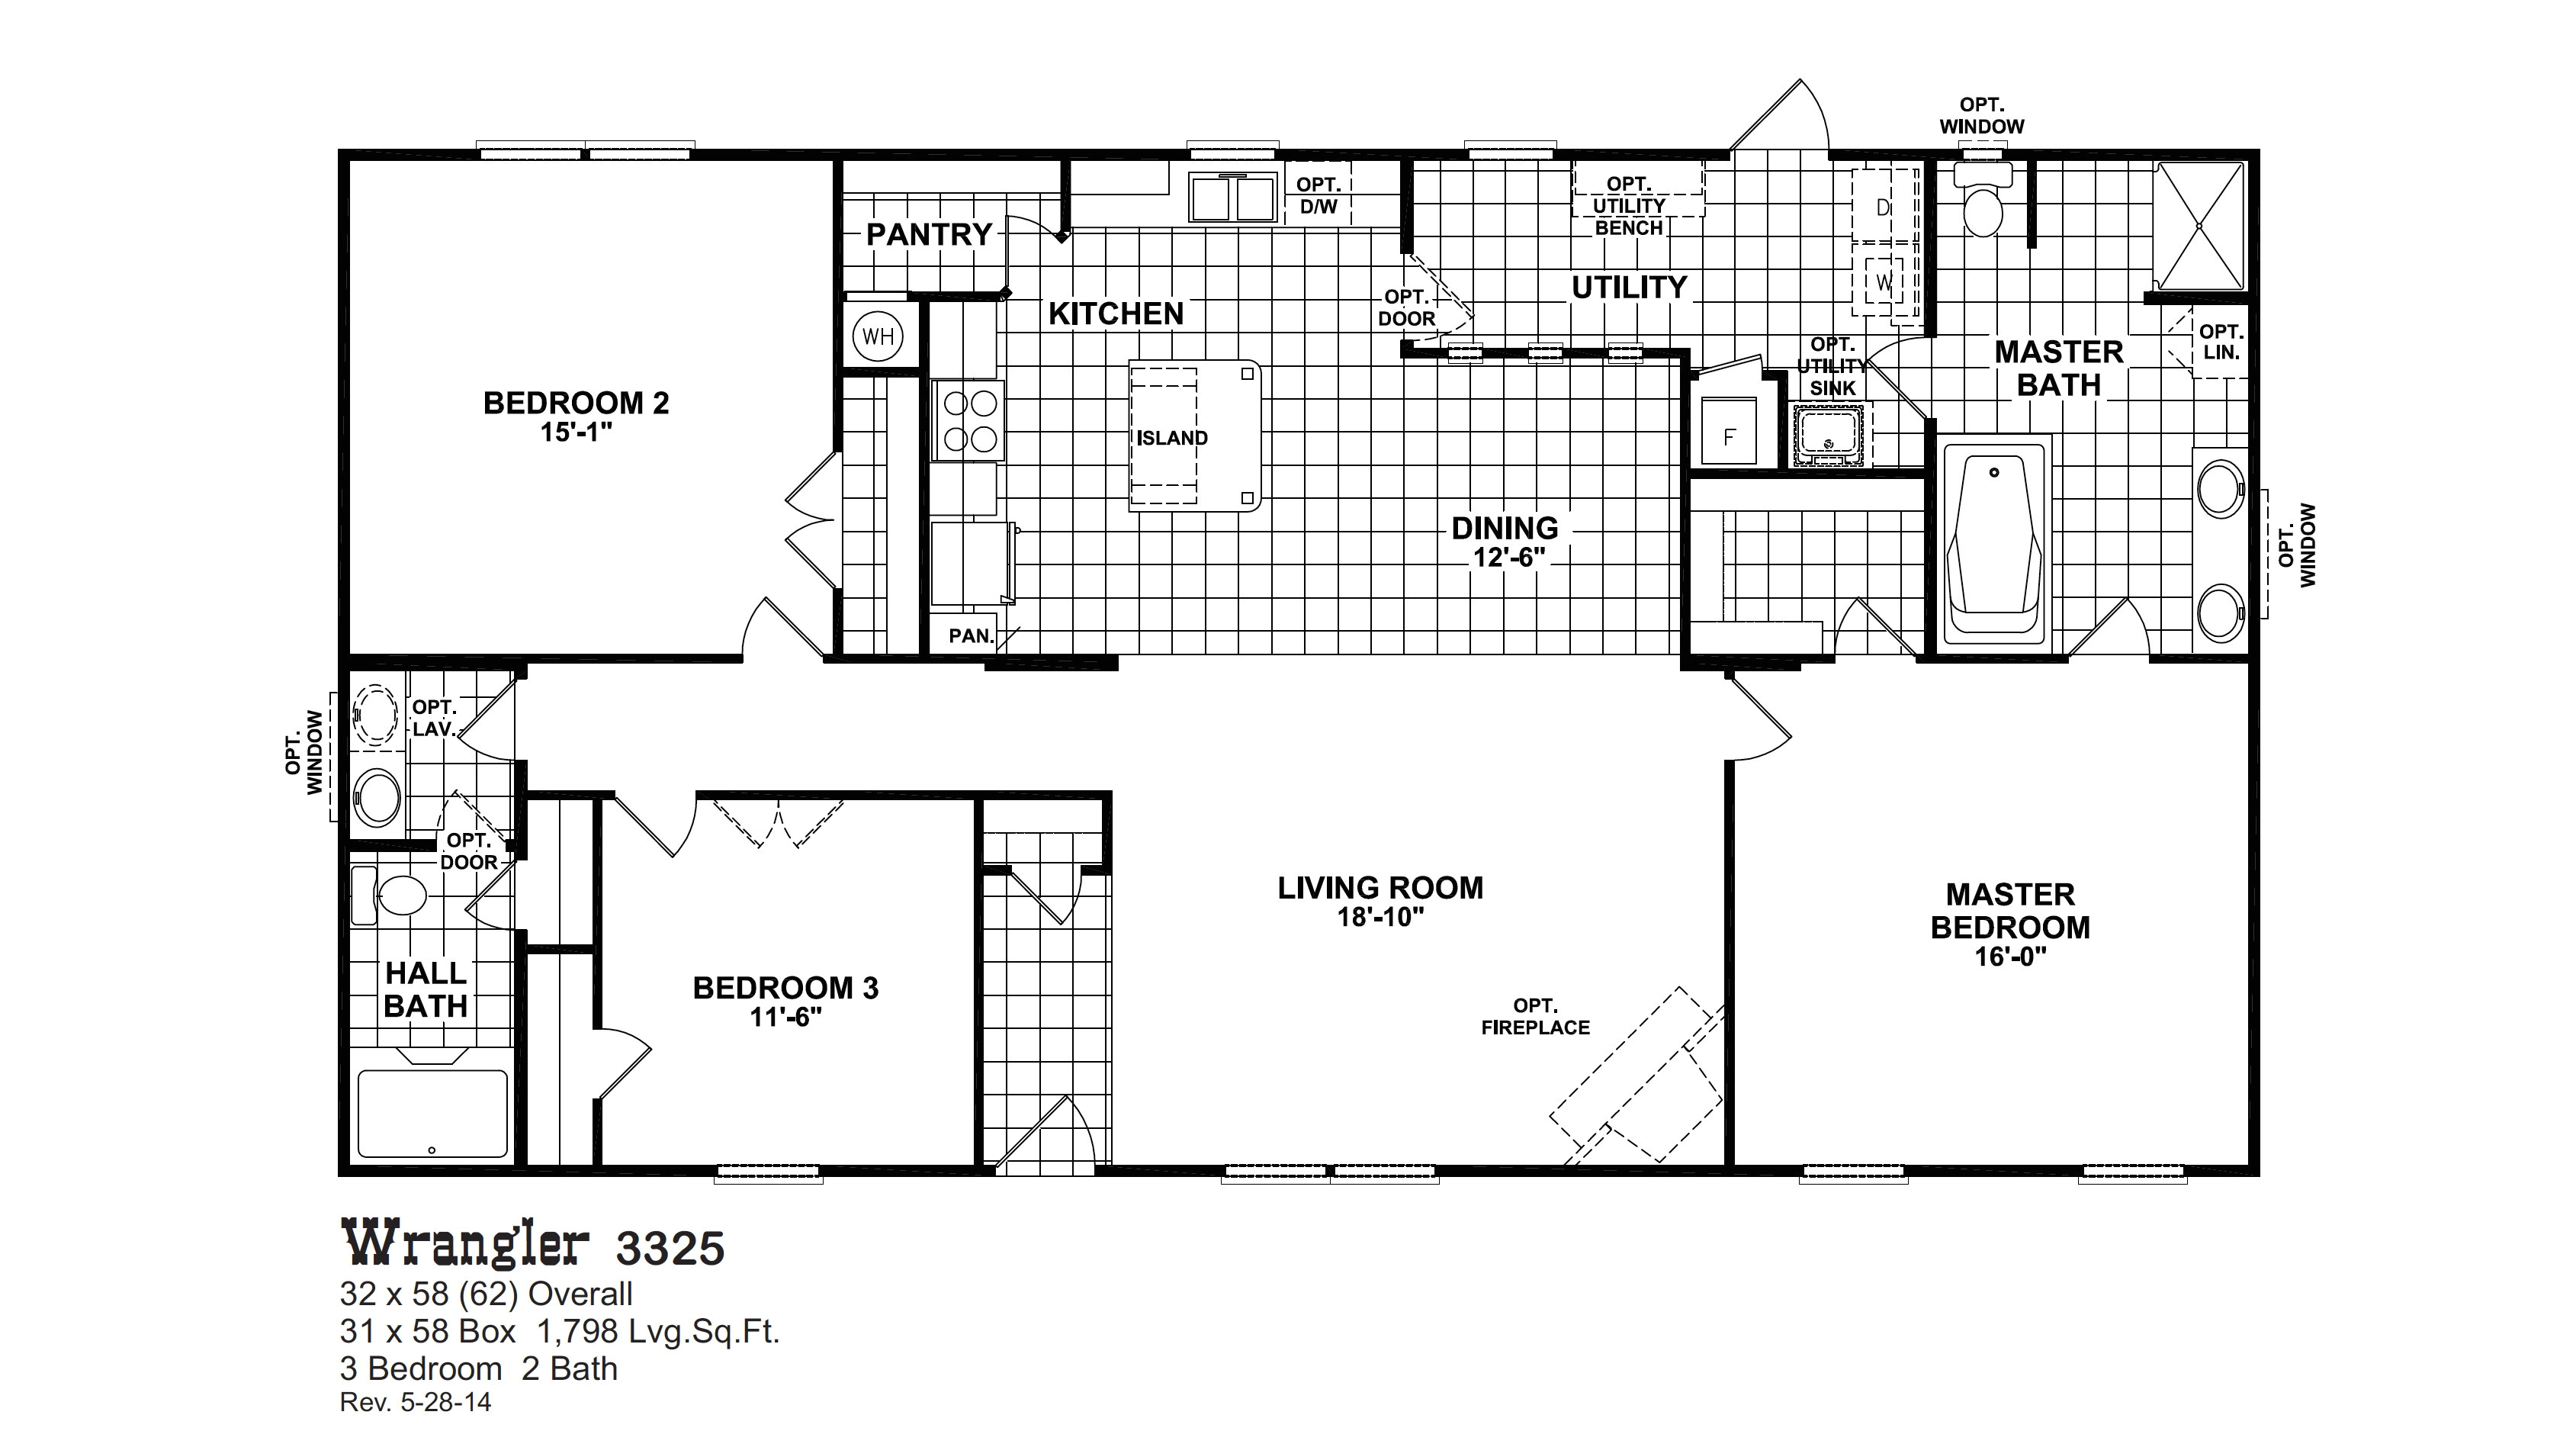 oak creek homes floor plans luxury master bedroom suite floor plans 32 x 24